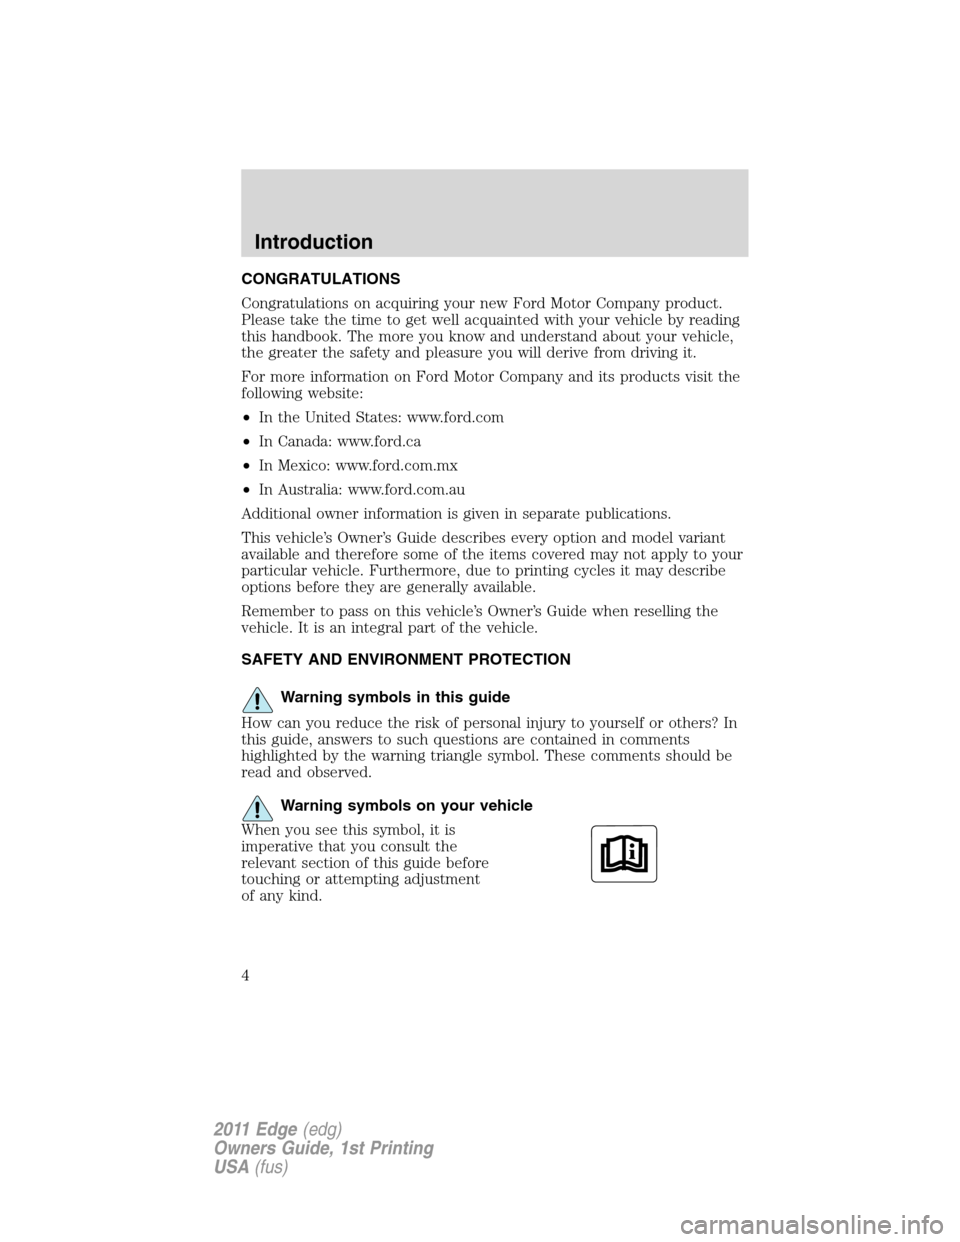 FORD EDGE 2011 1.G Owners Manual, Page 4